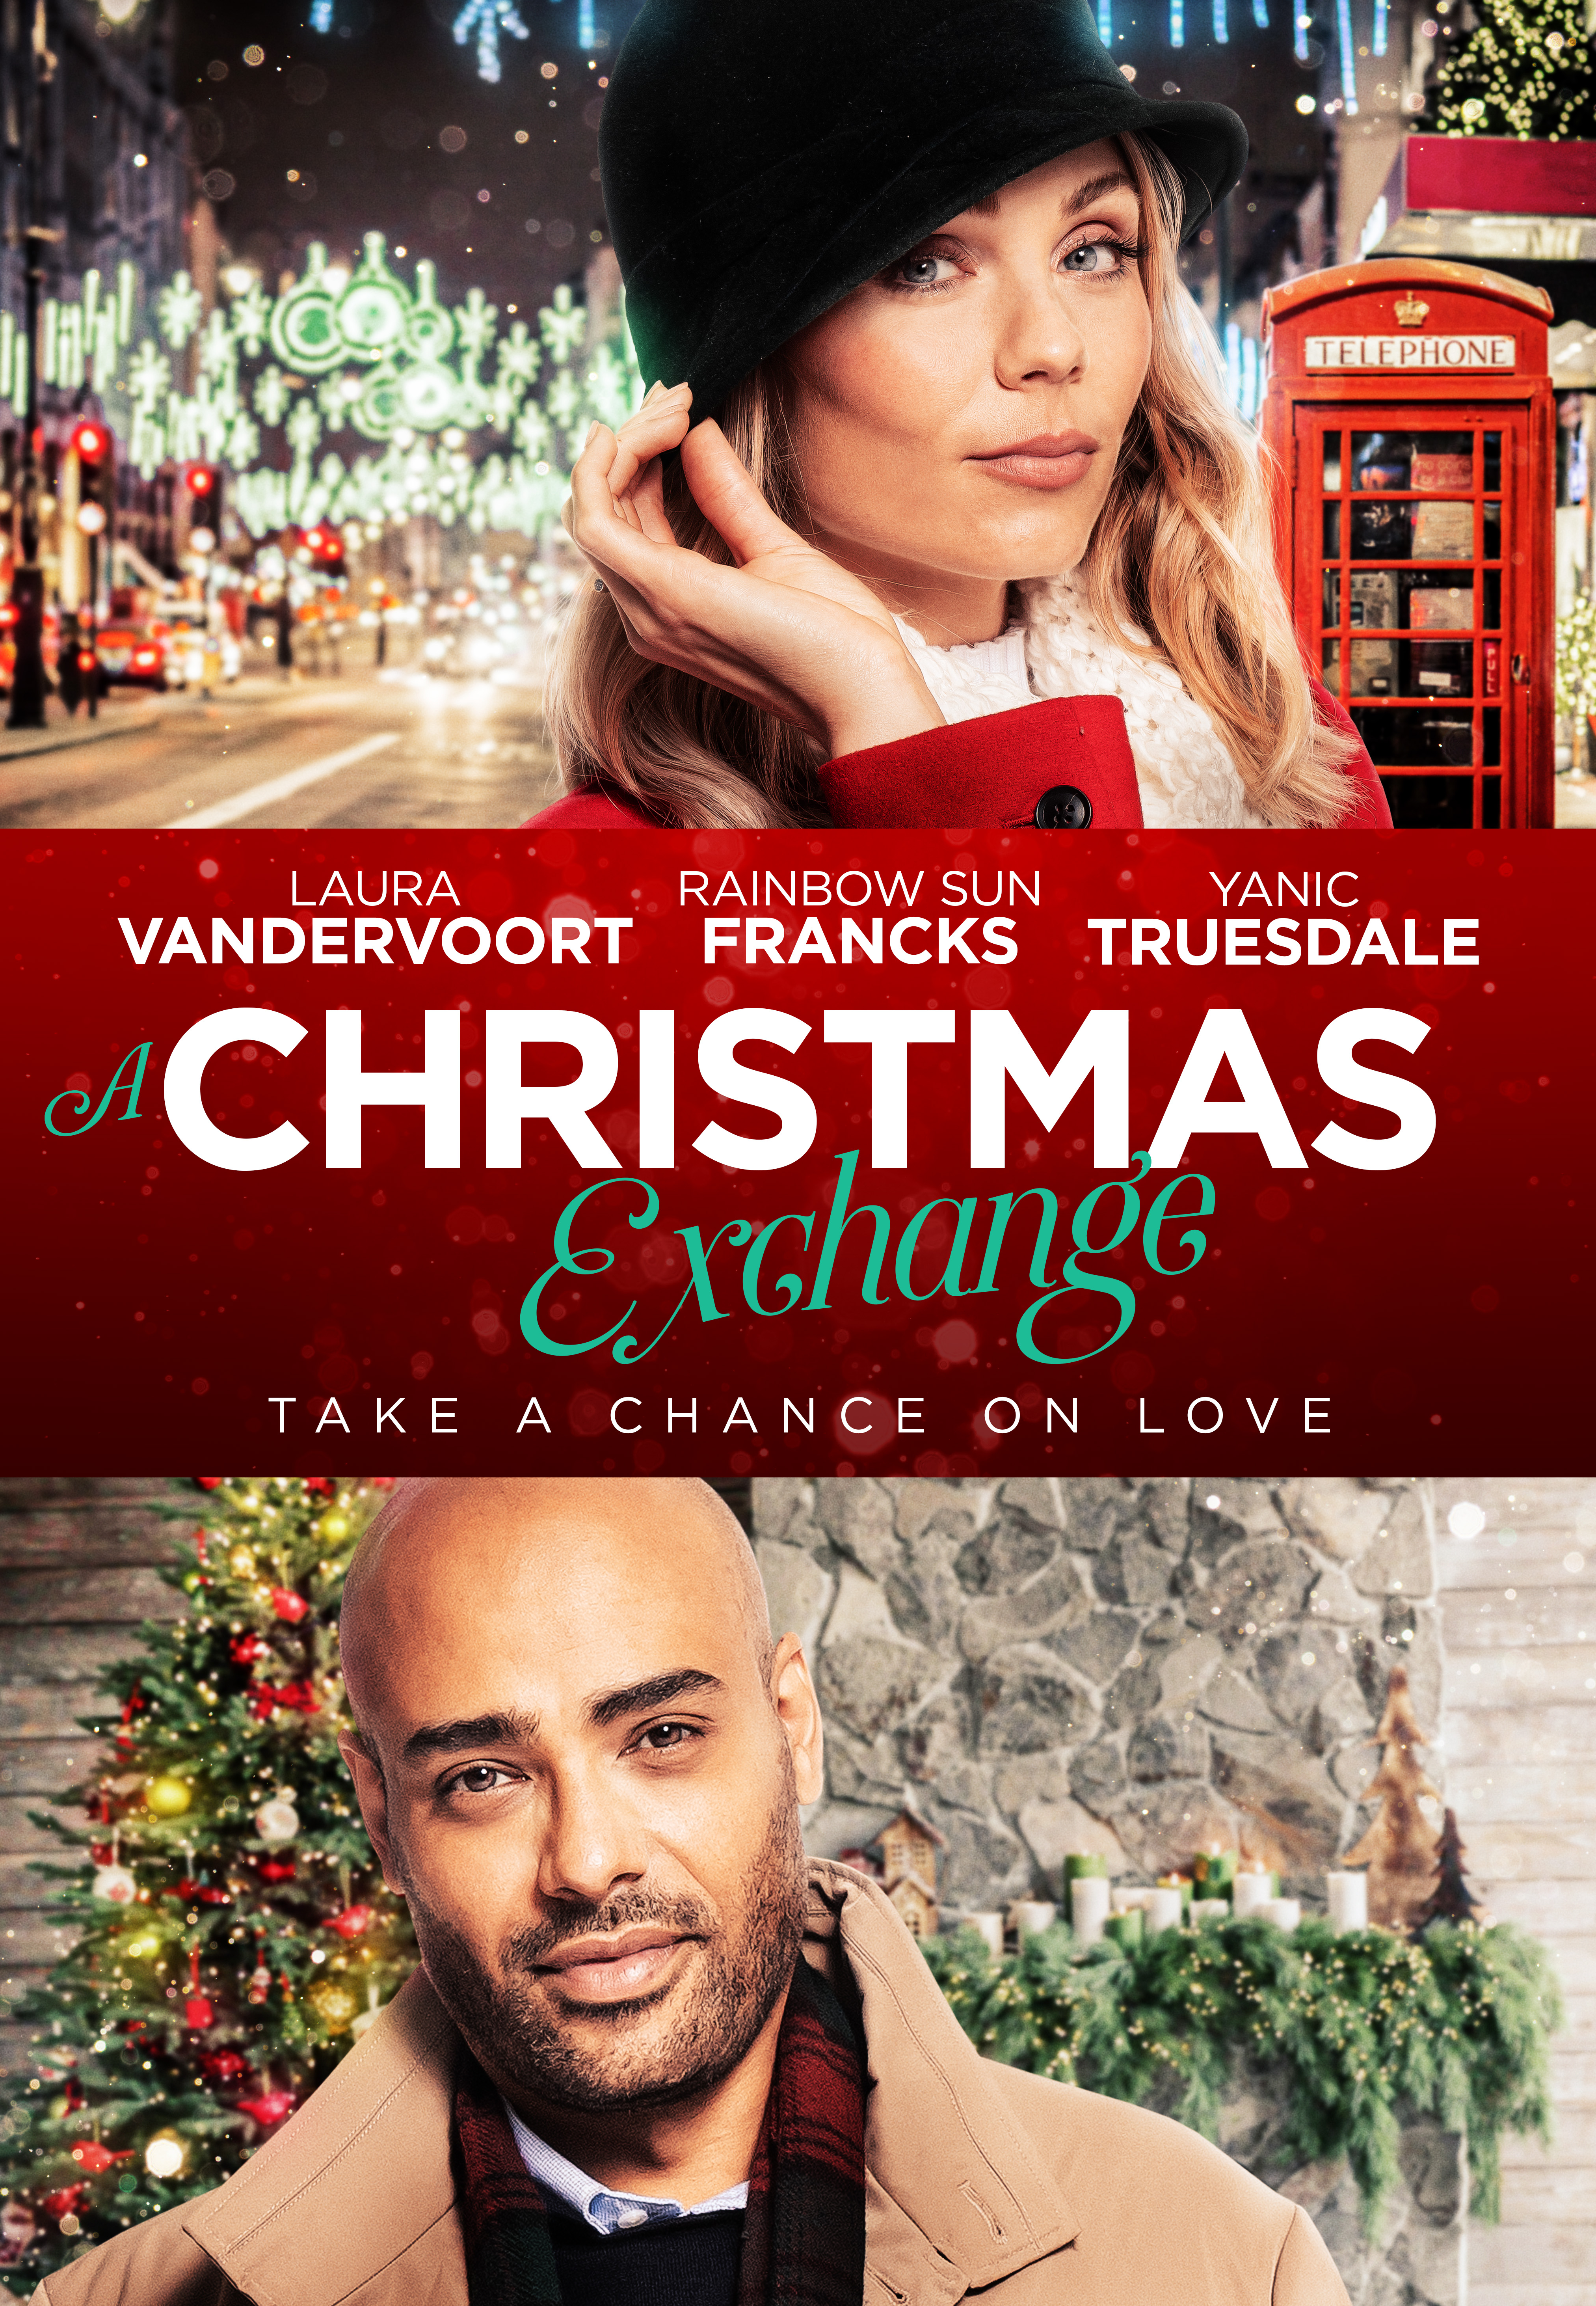 watch A Christmas Exchange on soap2day